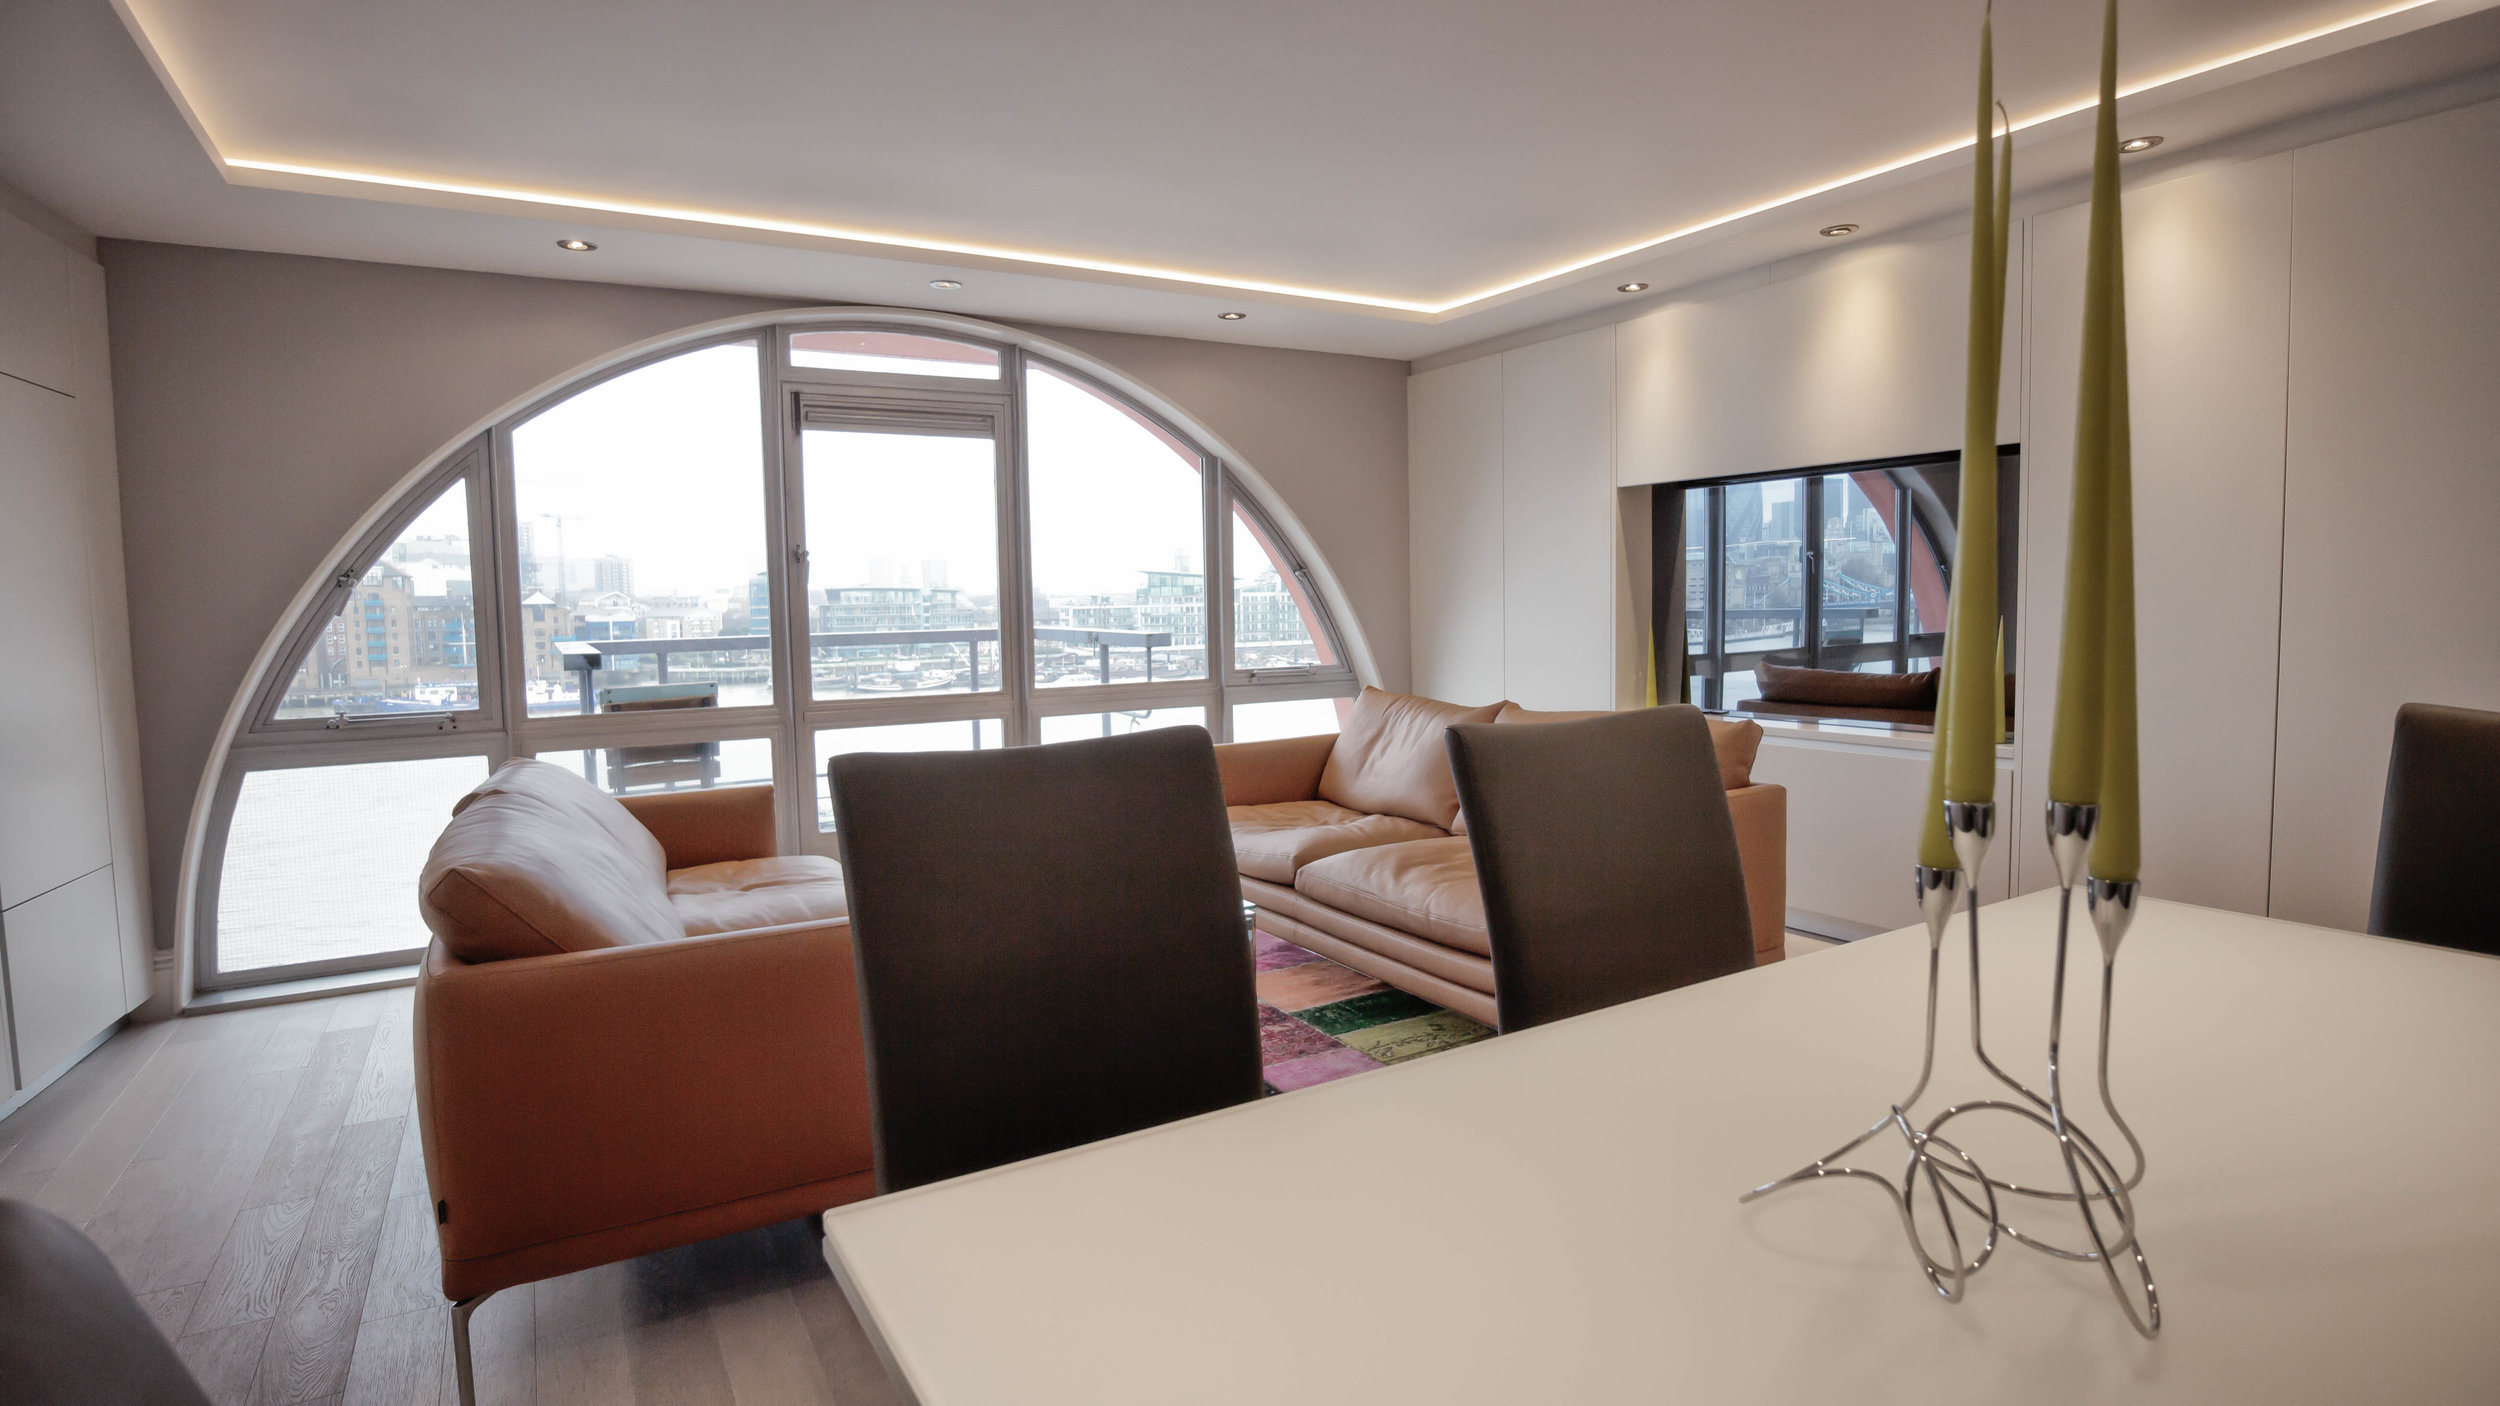 Ernest-Tsui-Architects-and-Partners-China-Wharf-Dining-Area.jpg